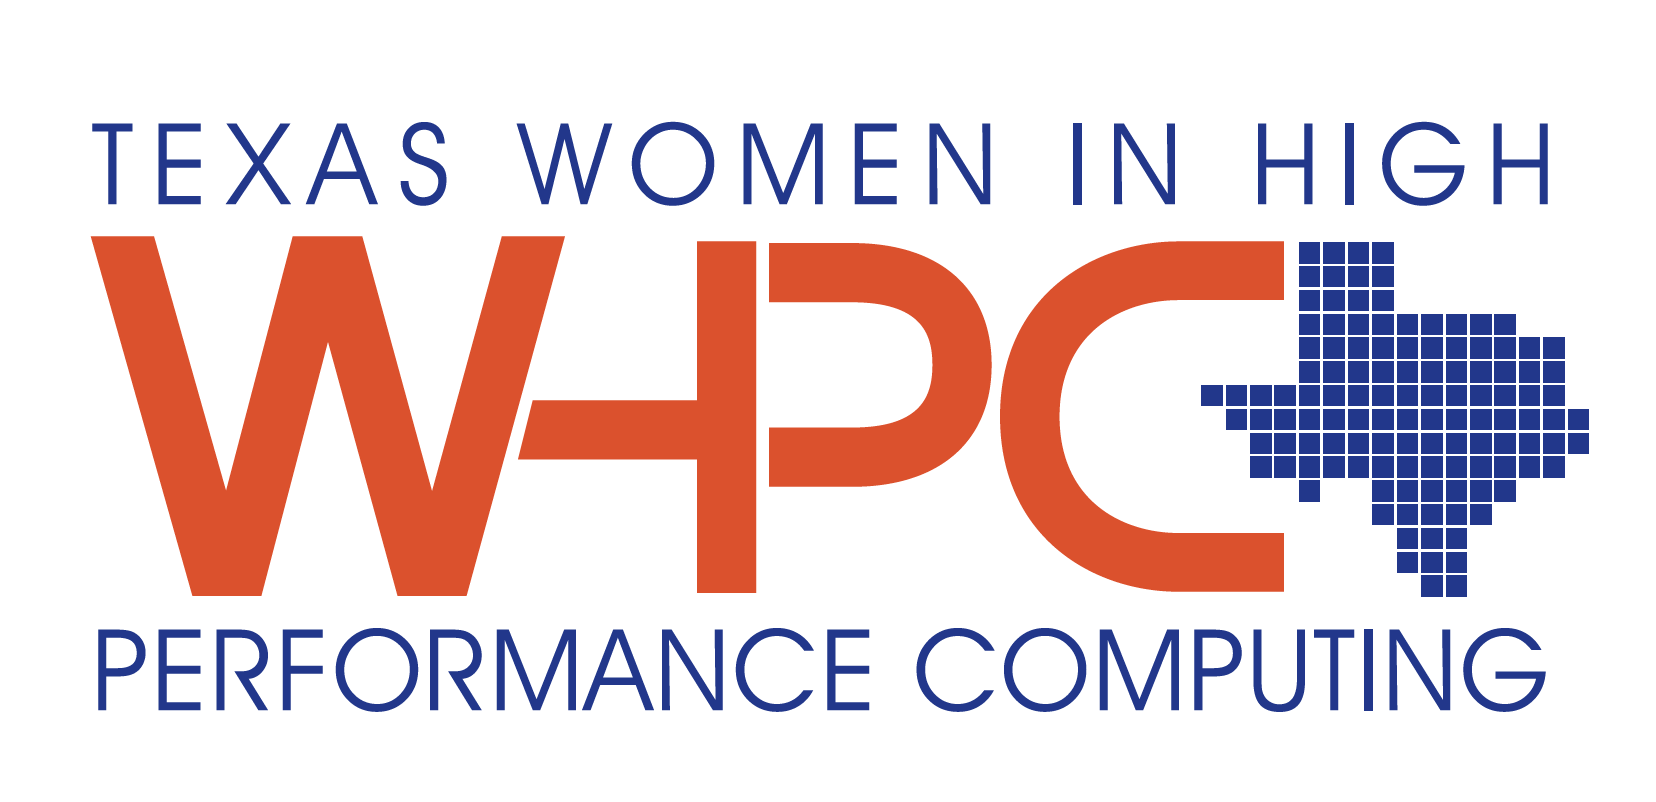 Go to Texas Women in High Performance Computing